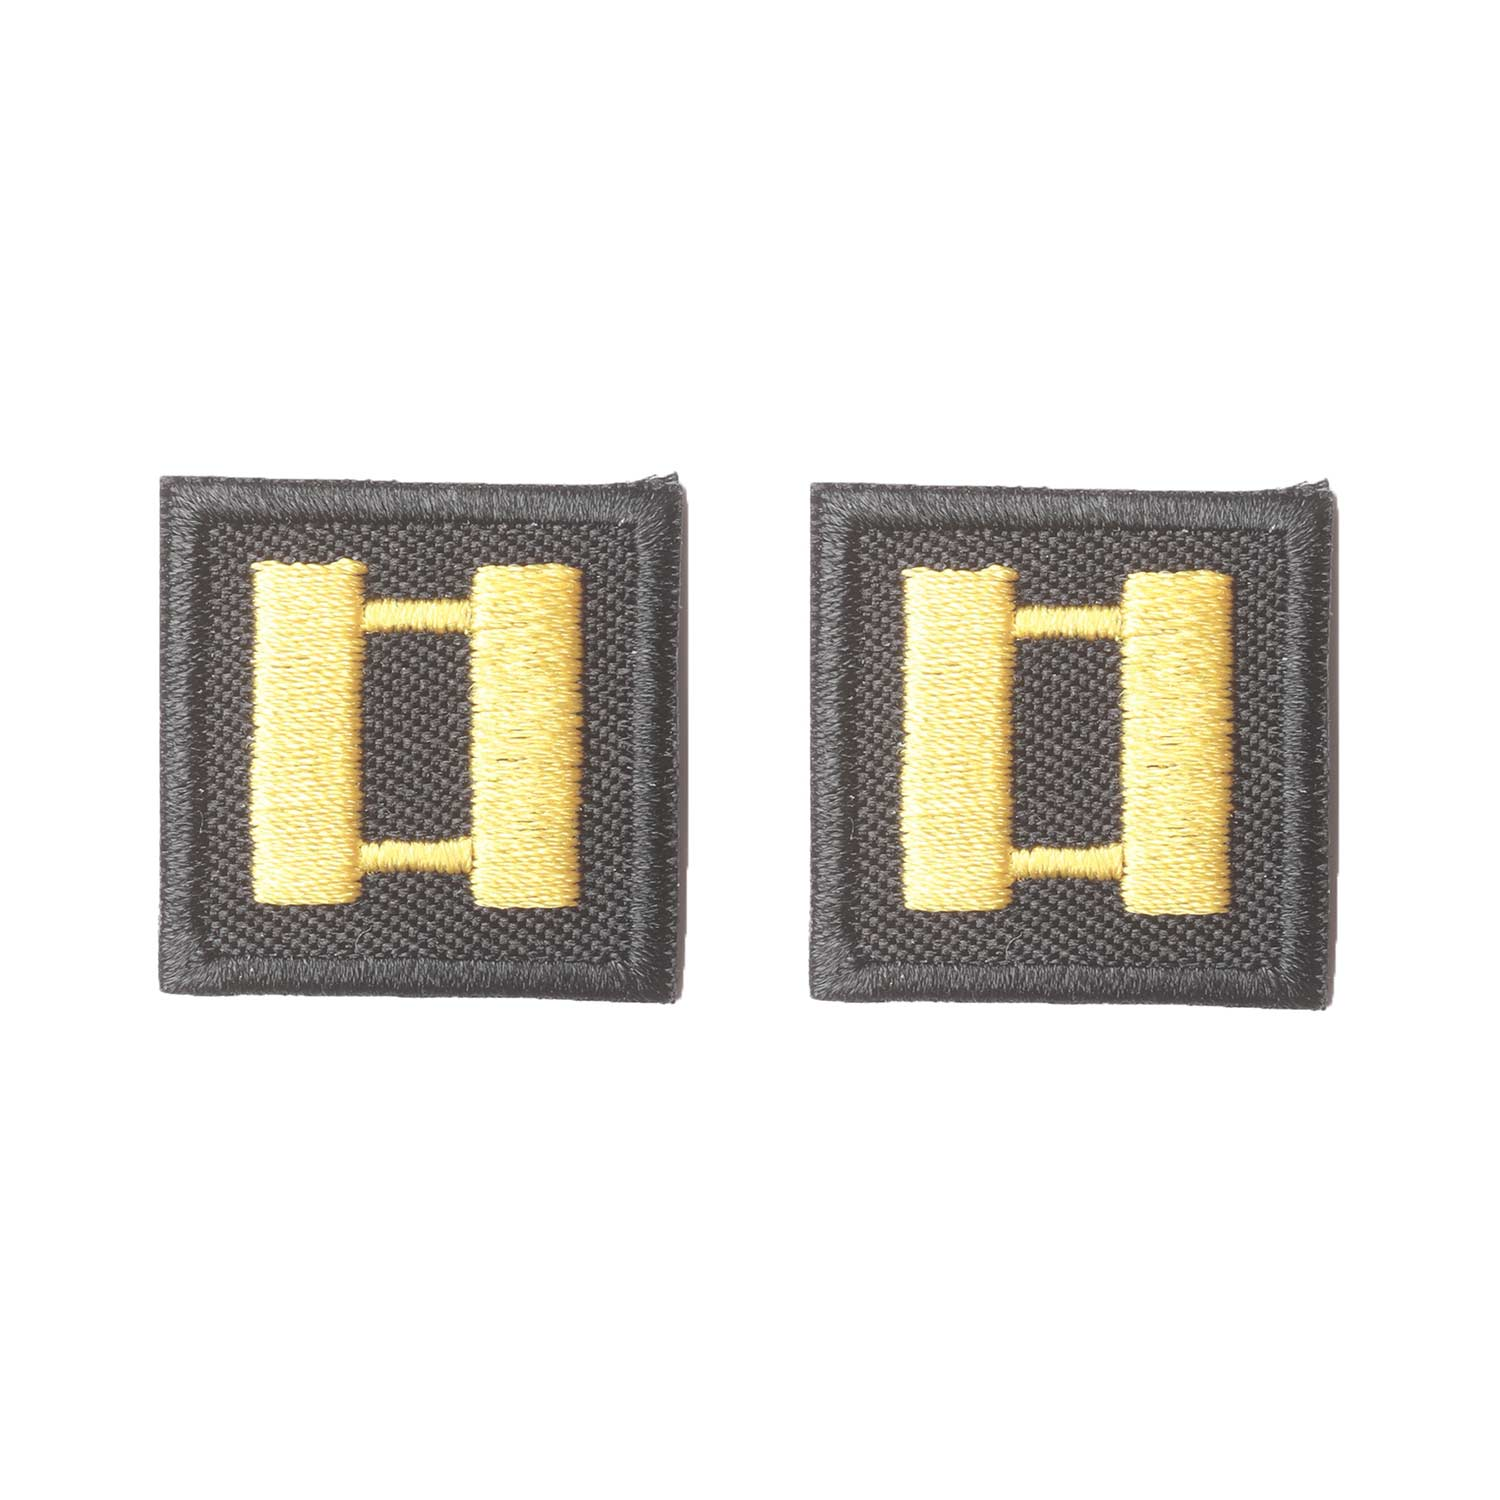 Penn Emblem Embroidered Collar Insignia Emblems